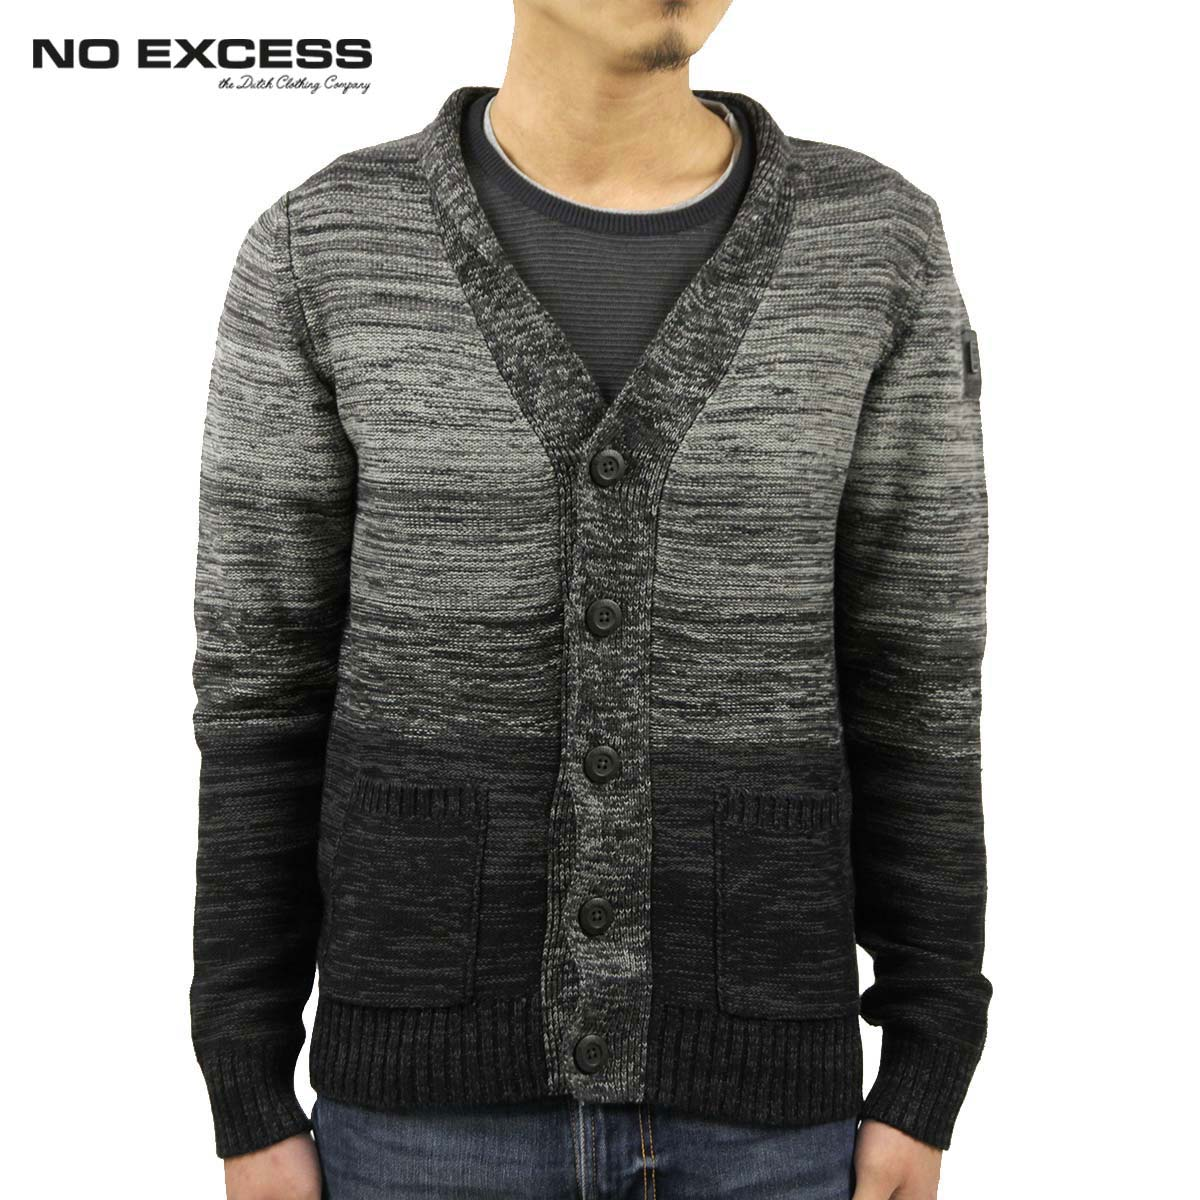 15%OFFセール 【販売期間 11/3 20:00~11/12 9:59】 ノーエクセス NO EXCESS 正規販売店 メンズ カーディガン PULLOVER BUTTON CARDIGAN 230933 20 black D00S15